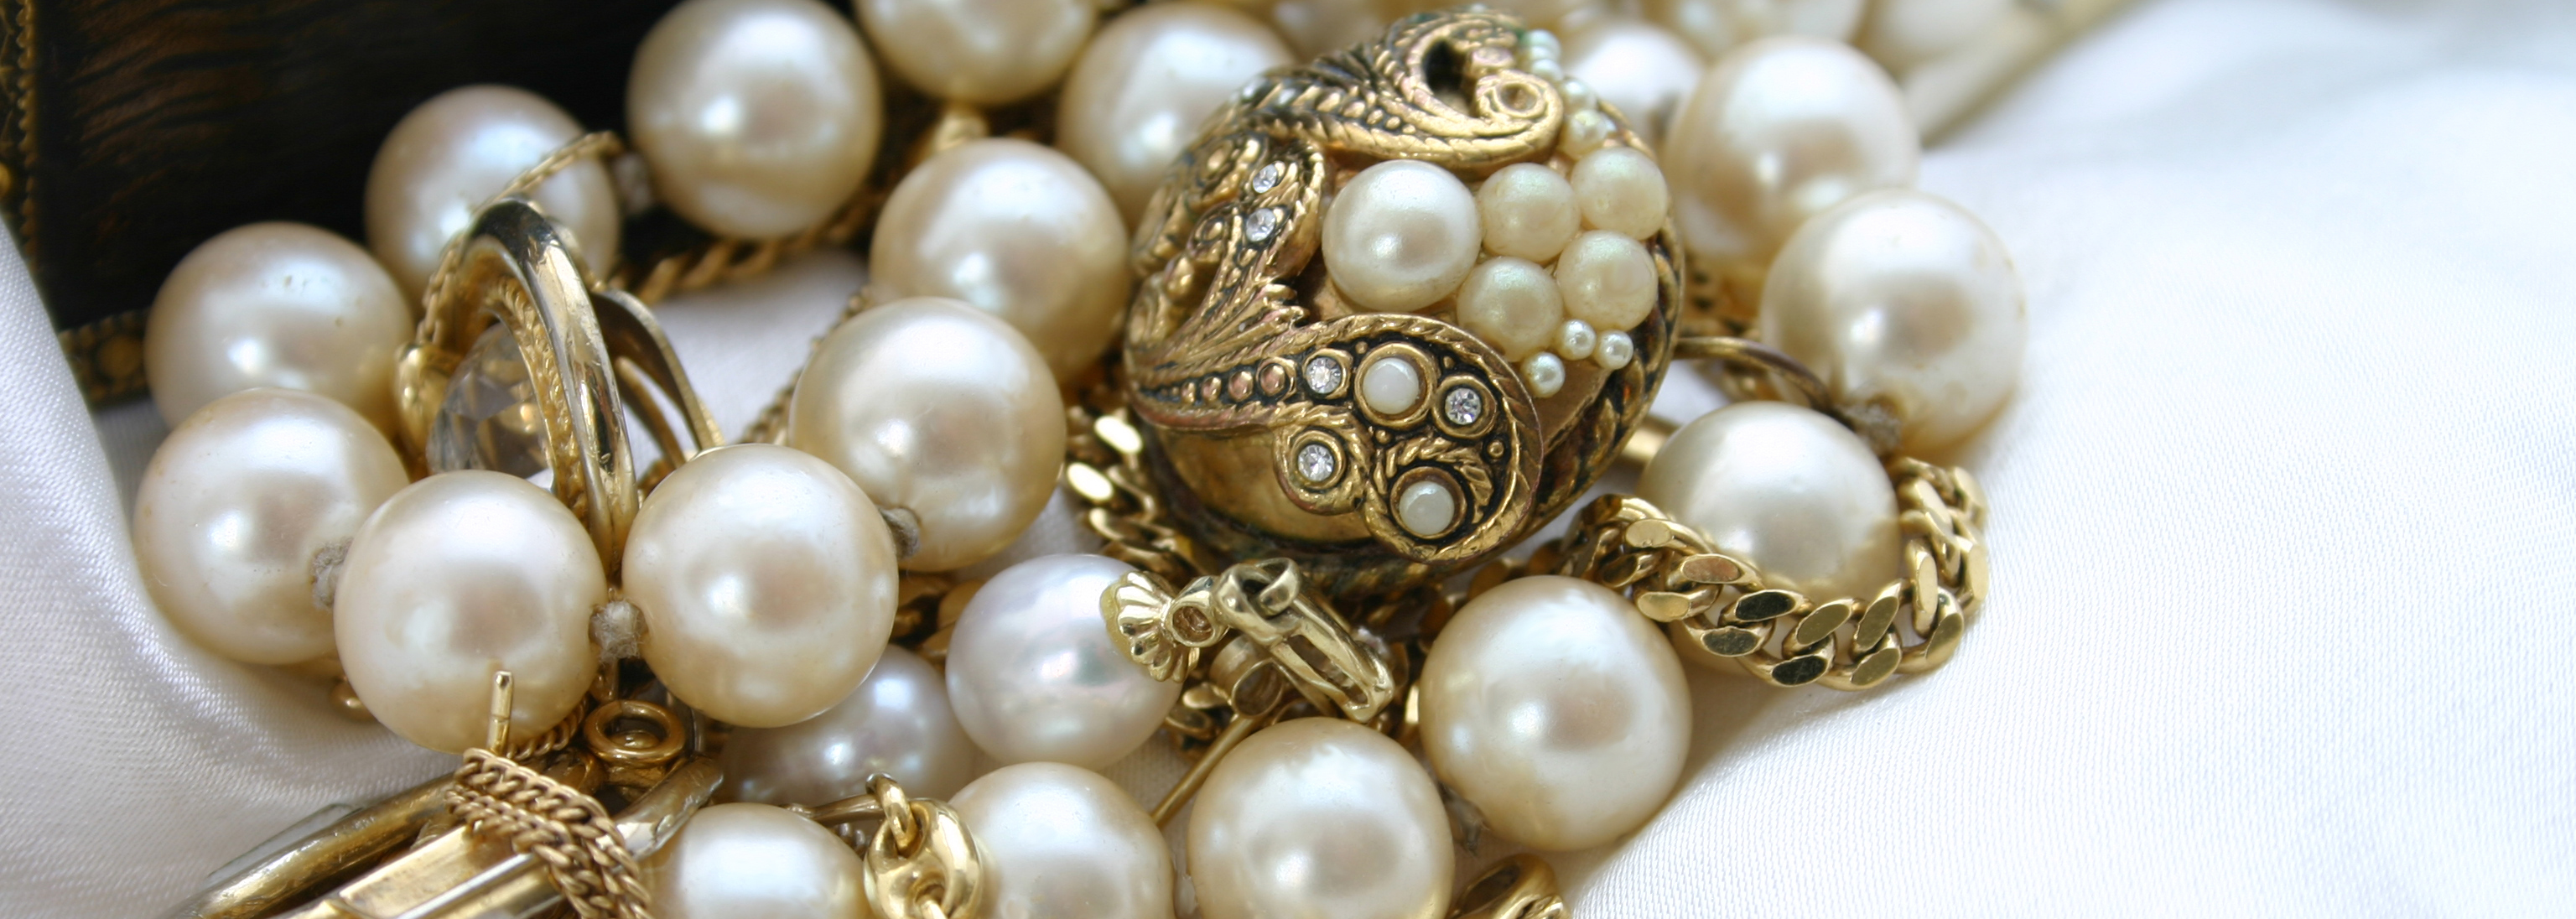 Jewelry Auctions Online Fine Antique Jewelry Auctions Buy Estate Jewelry